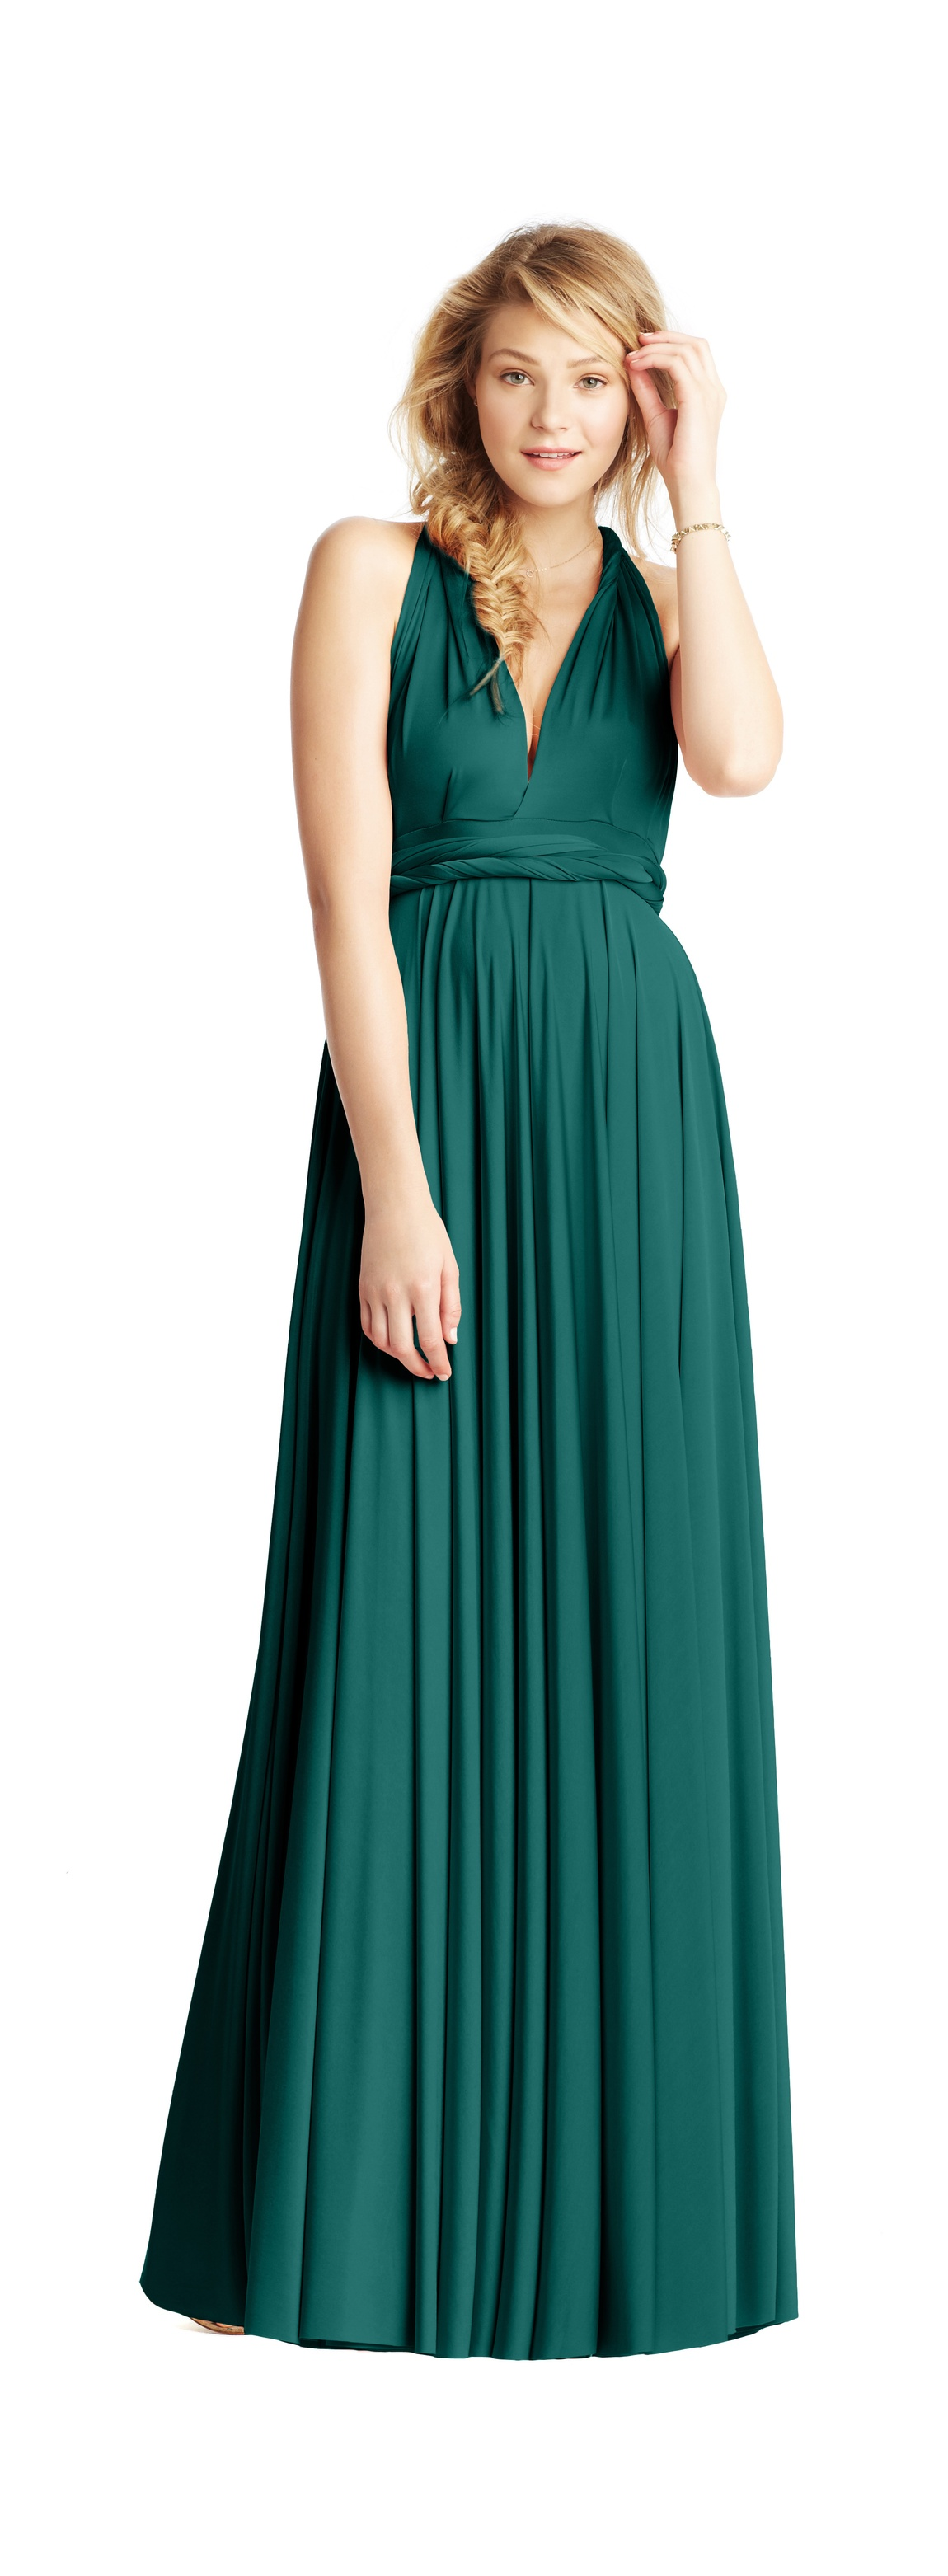 Two birds bridesmaid dress 2013 weddings deep teal for Teal dress for wedding